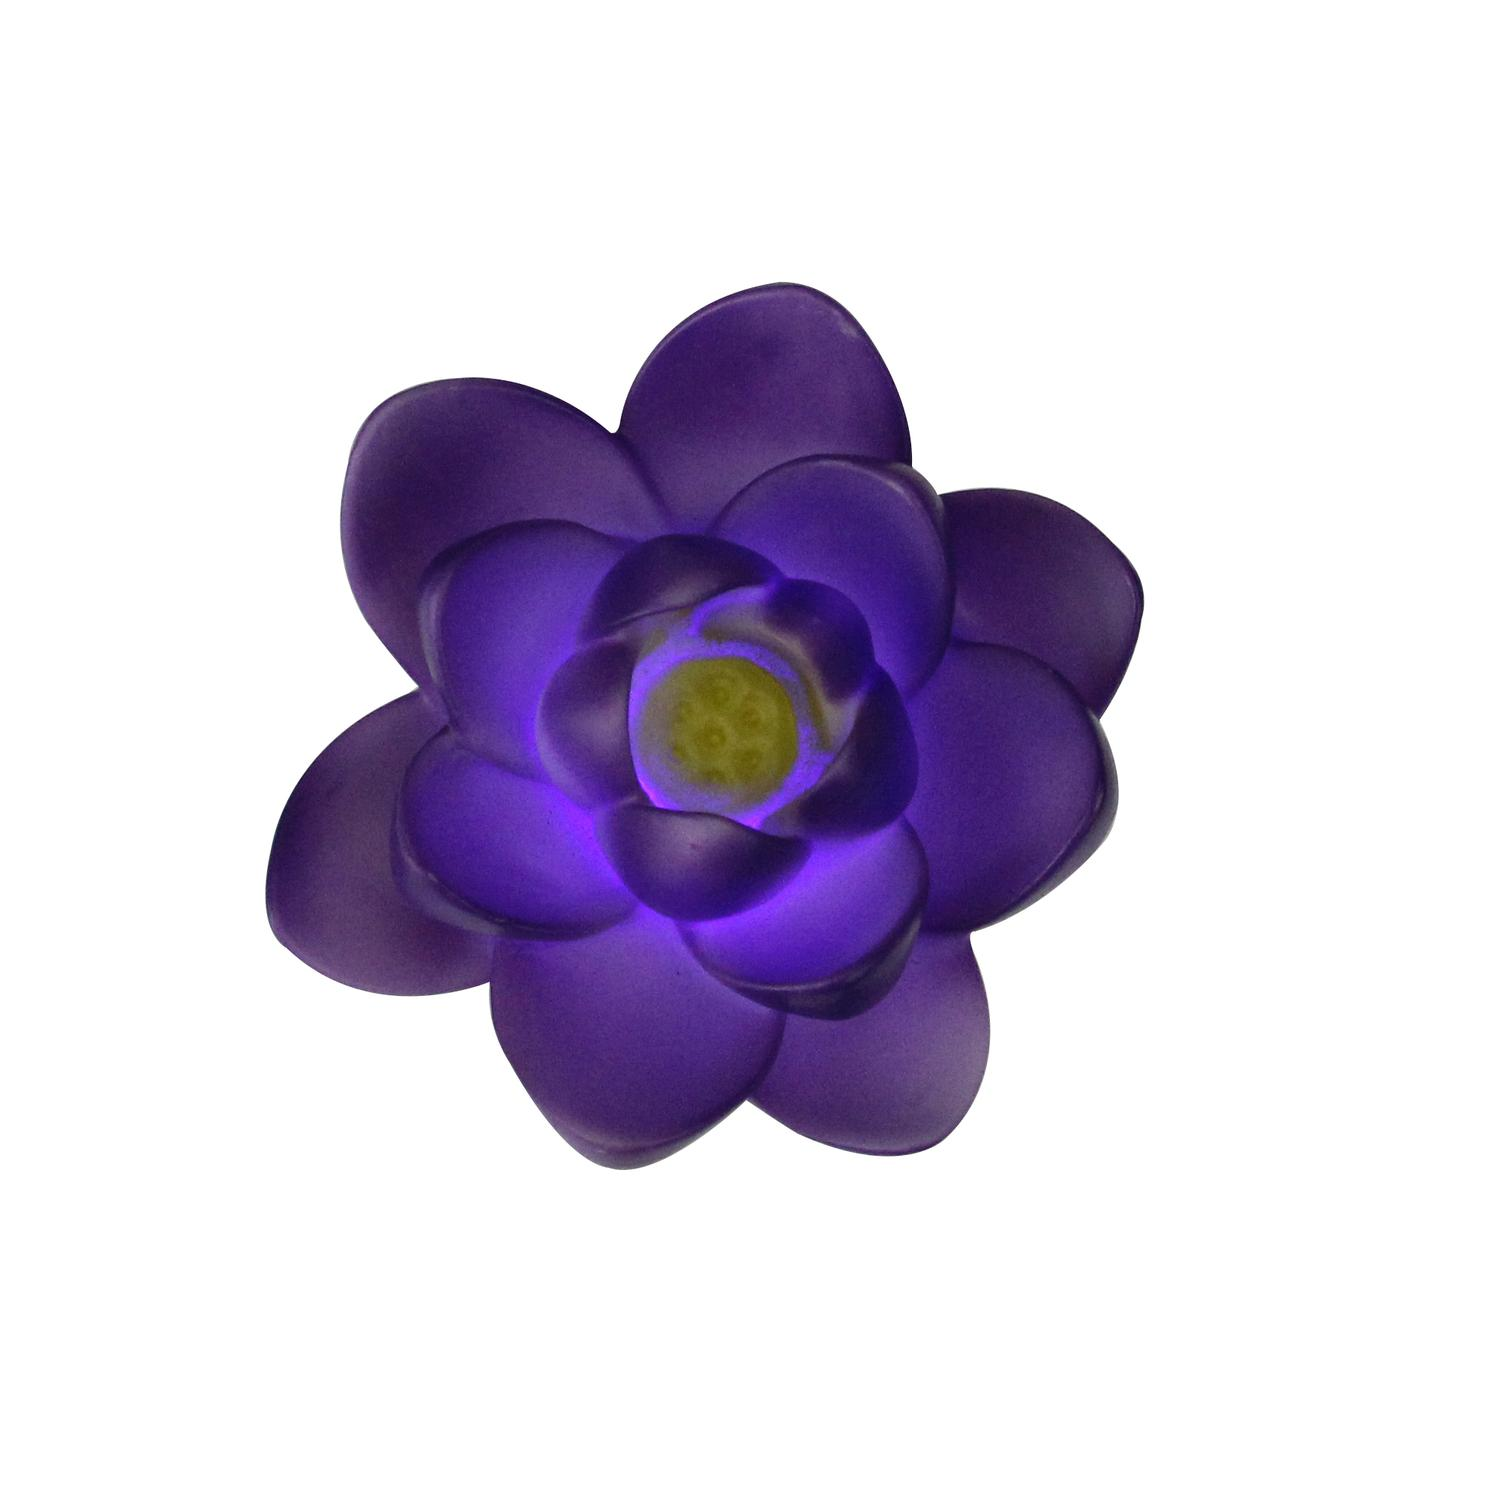 """4"""" Floating Purple Flower LED Color Changing Patio or Swimming Pool Light - image 2 of 2"""